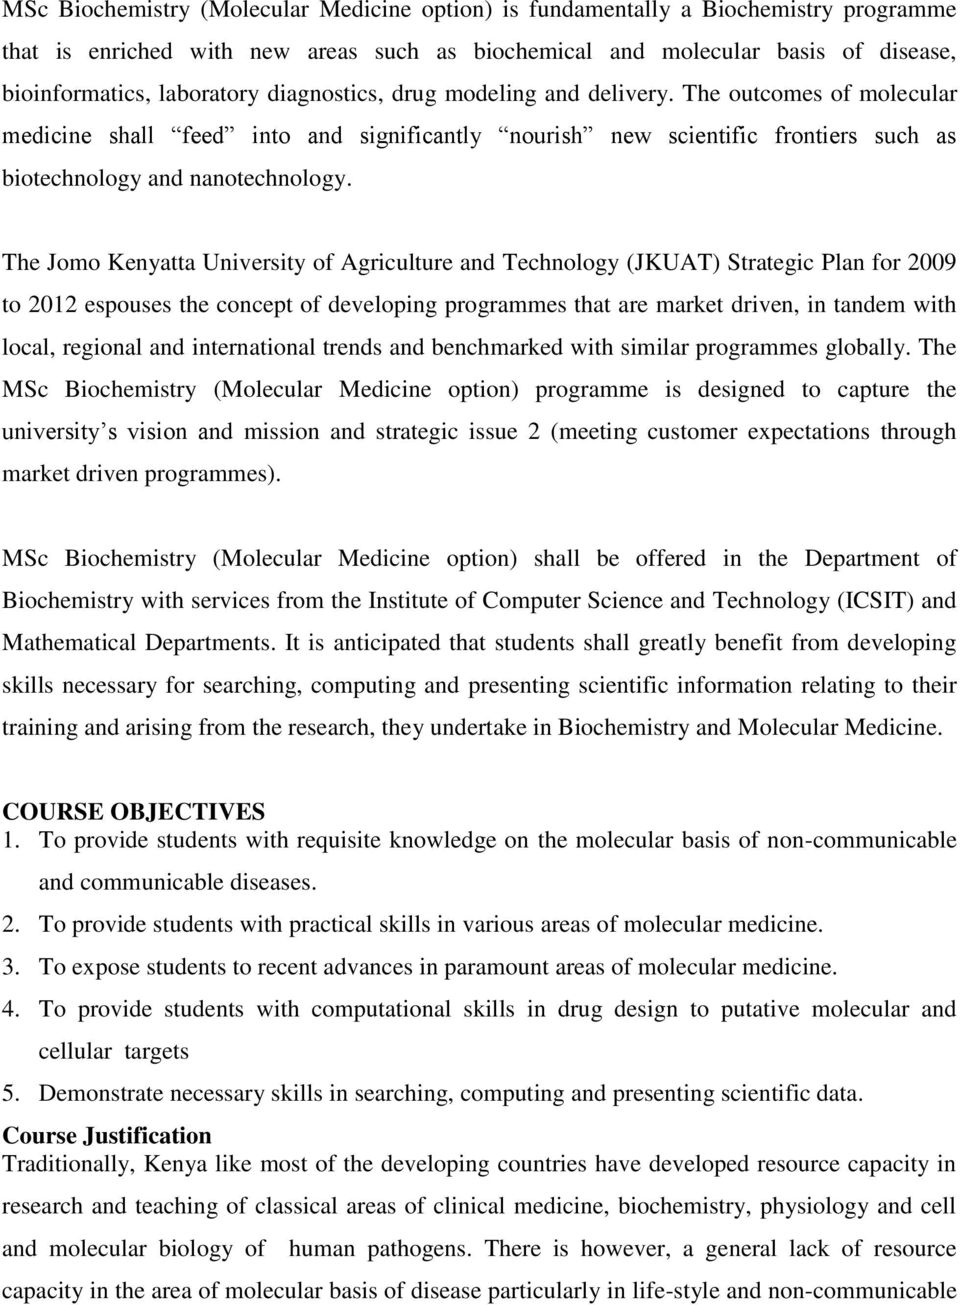 The Jomo Kenyatta University of Agriculture and Technology (JKUAT) Strategic Plan for 2009 to 2012 espouses the concept of developing programmes that are market driven, in tandem with local, regional